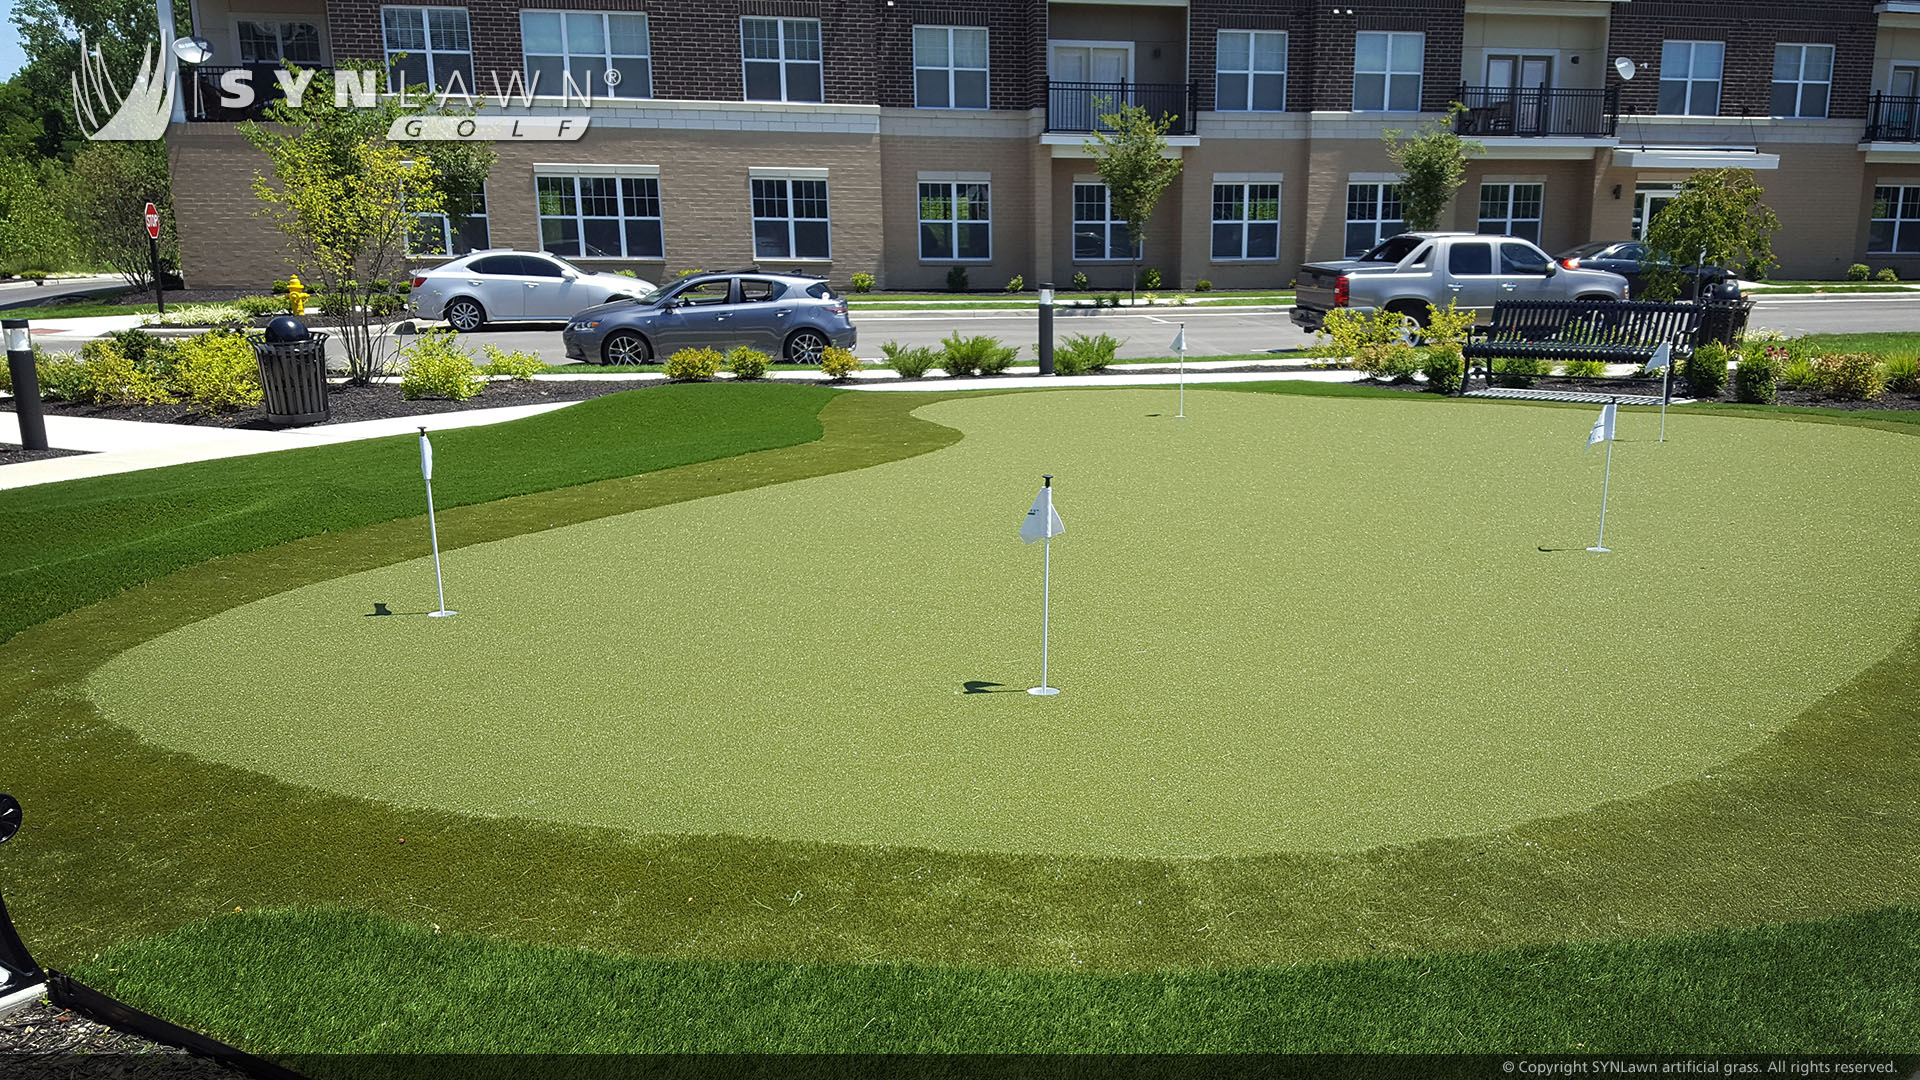 residential putting green, for residential community